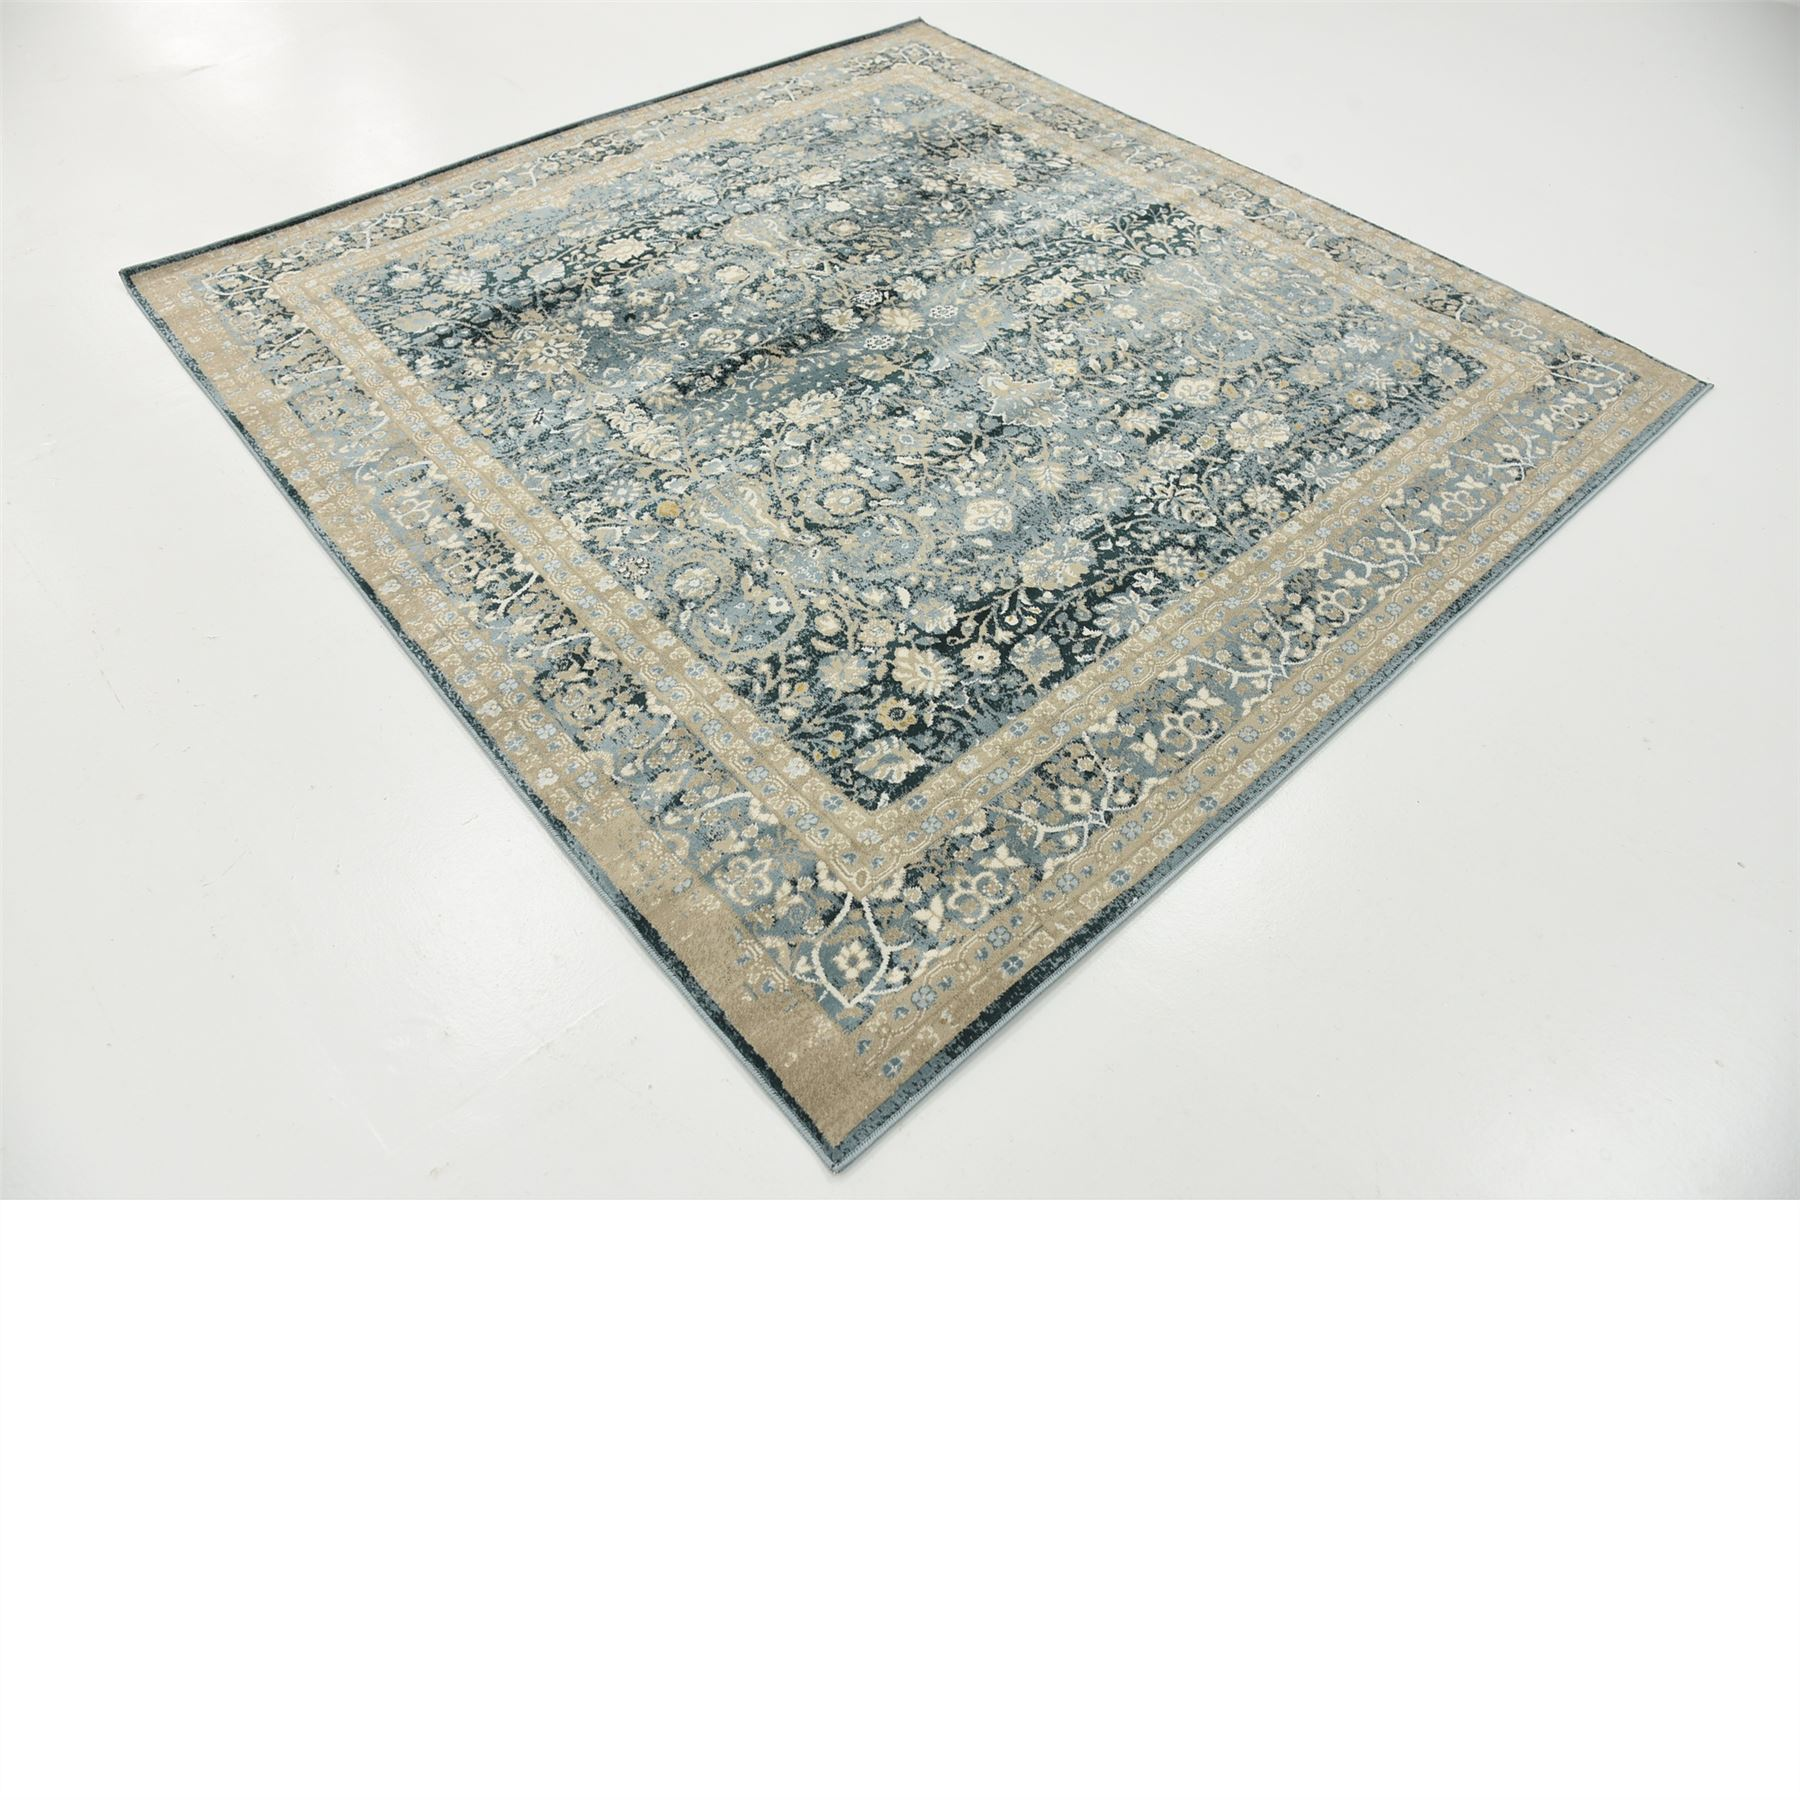 home oriental area carpet dyed floor rug traditional. Black Bedroom Furniture Sets. Home Design Ideas